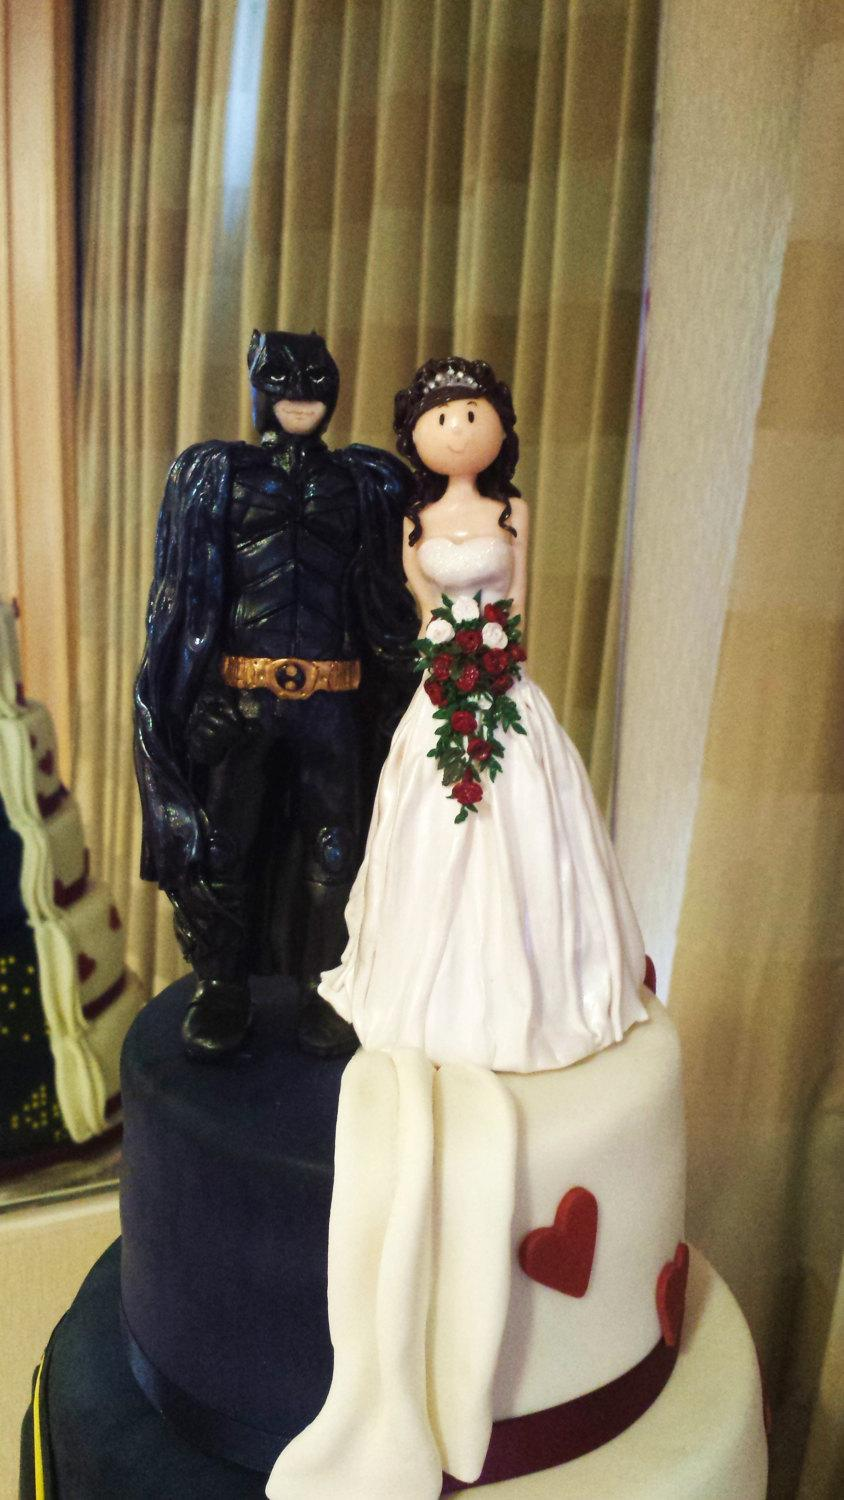 Dekor   Bride And Superhero Wedding Cake Topper  2557647   Weddbook Bride and Superhero Wedding Cake Topper